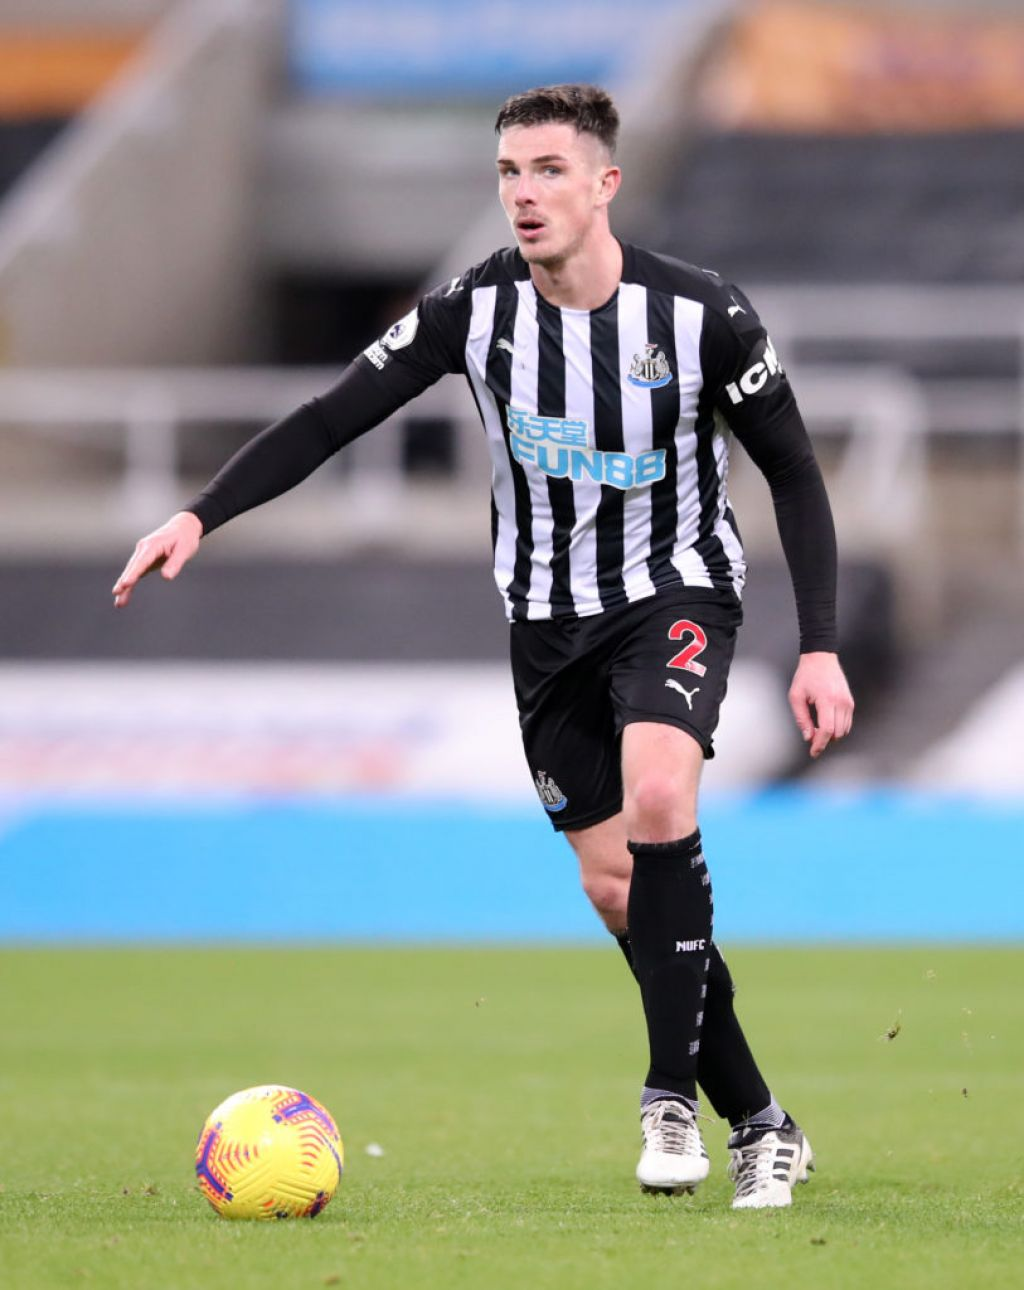 Irish Newcastle defender Ciaran Clark signs new two-year deal